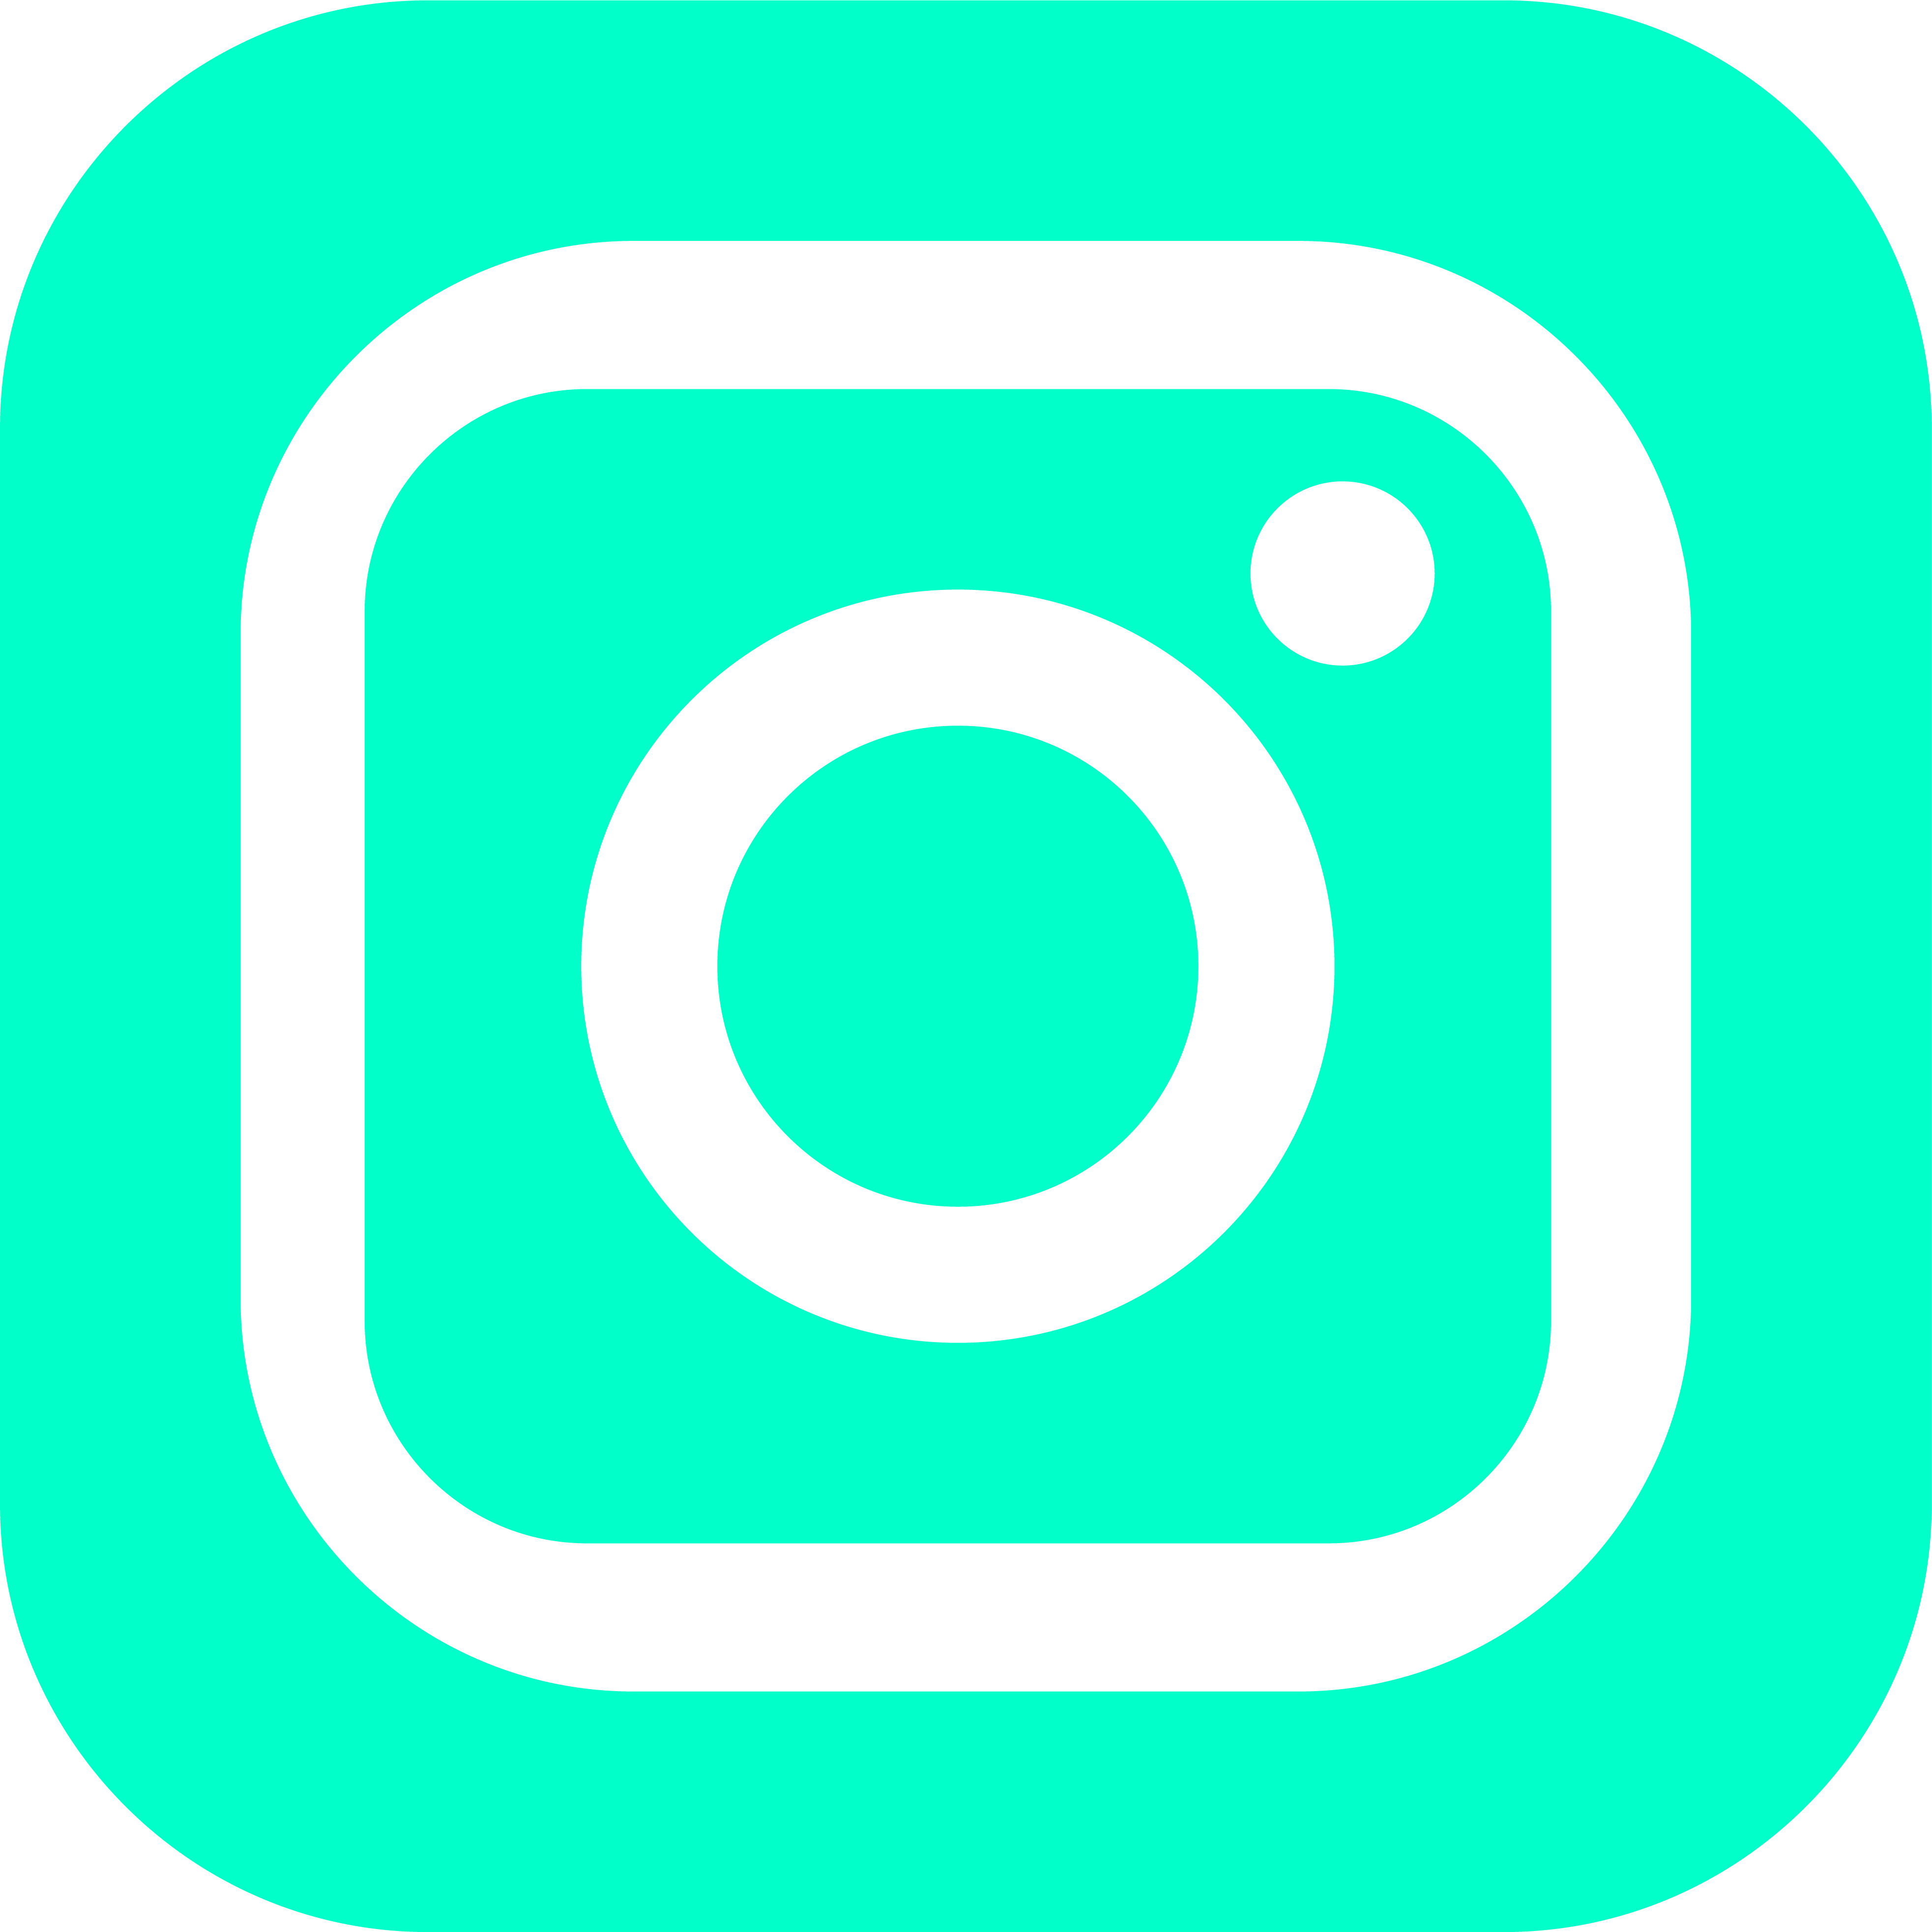 may robinson design instagram Icon